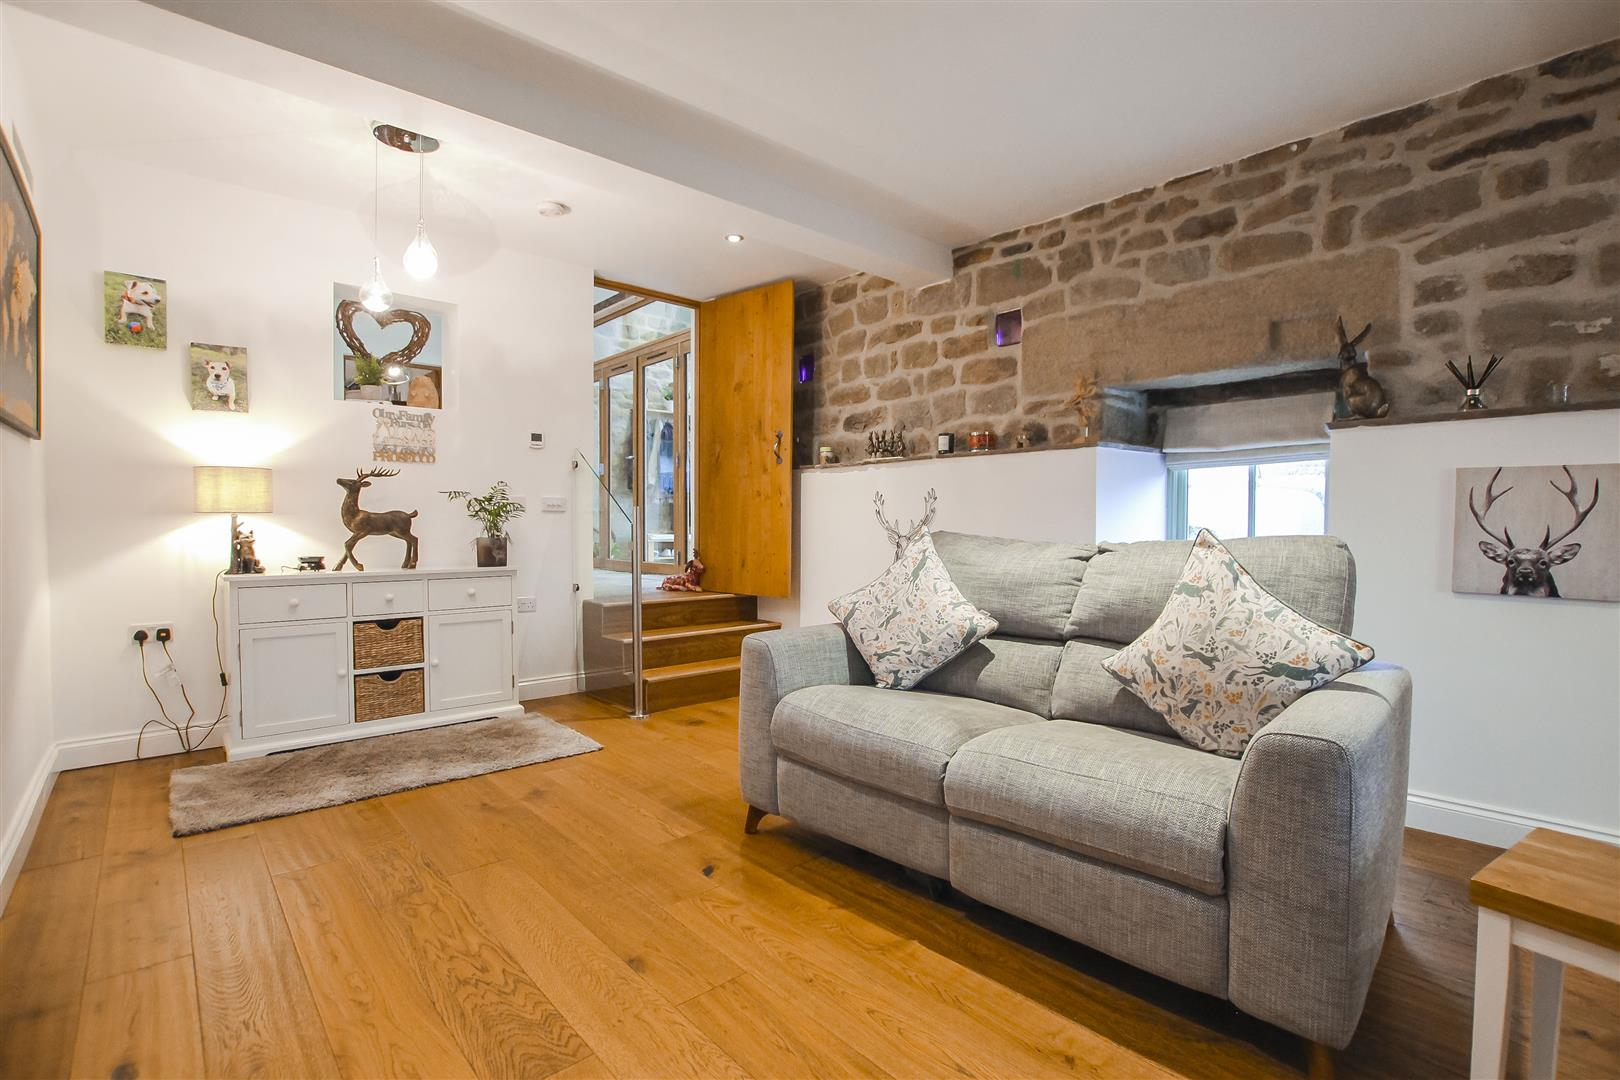 4 Bedroom Barn Conversion For Sale - Living Room